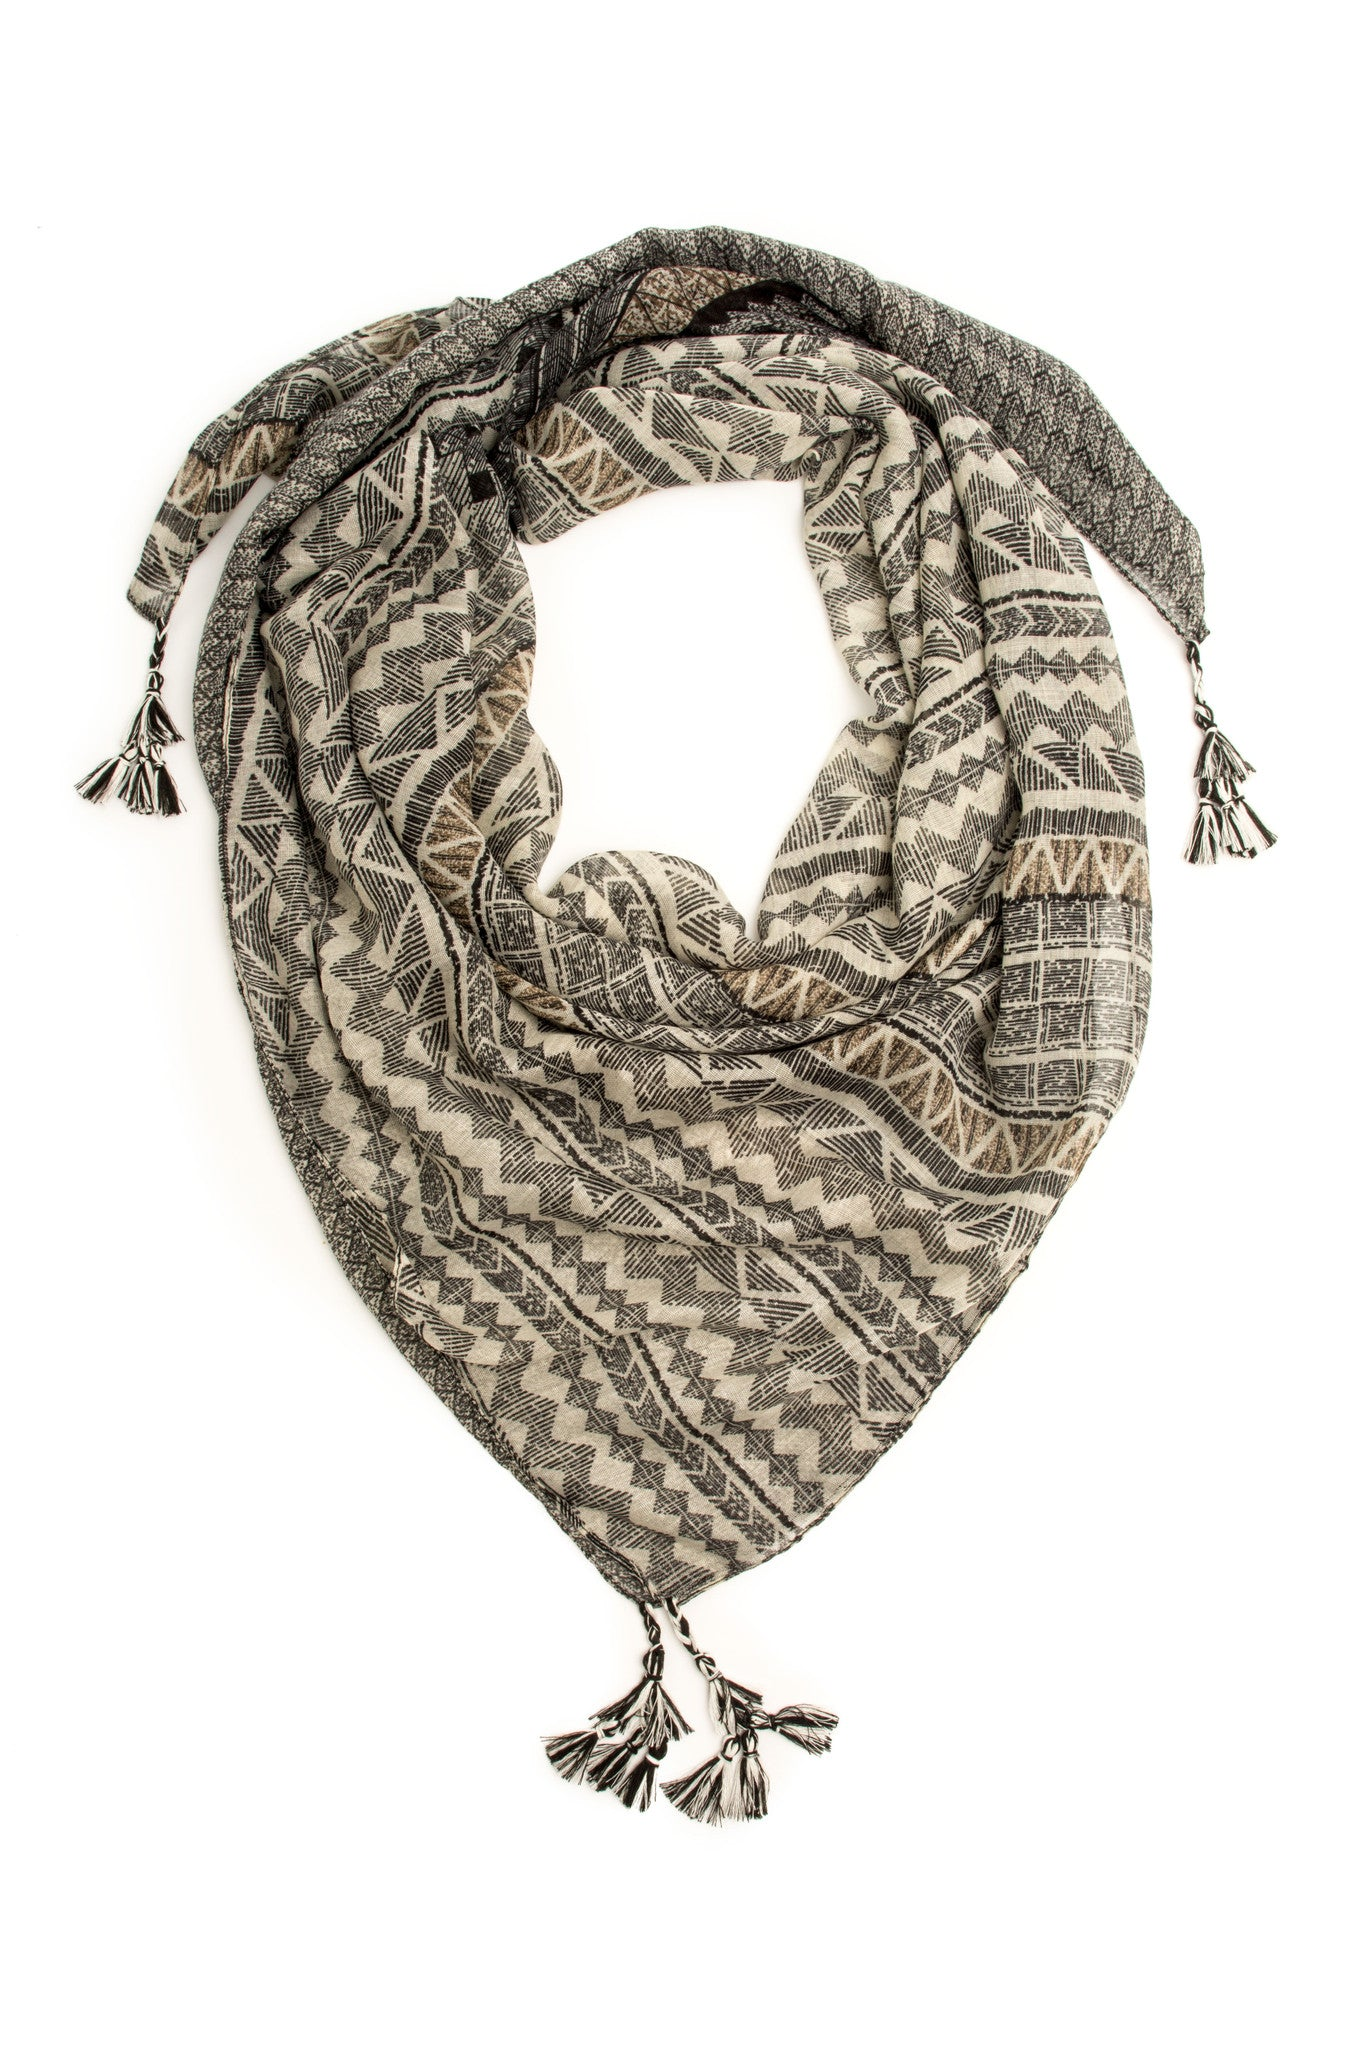 Scarves - Zuma Boho Square Scarf, Tribal Tassel Scarf -(Black/Gray) Bohomonde  - 3